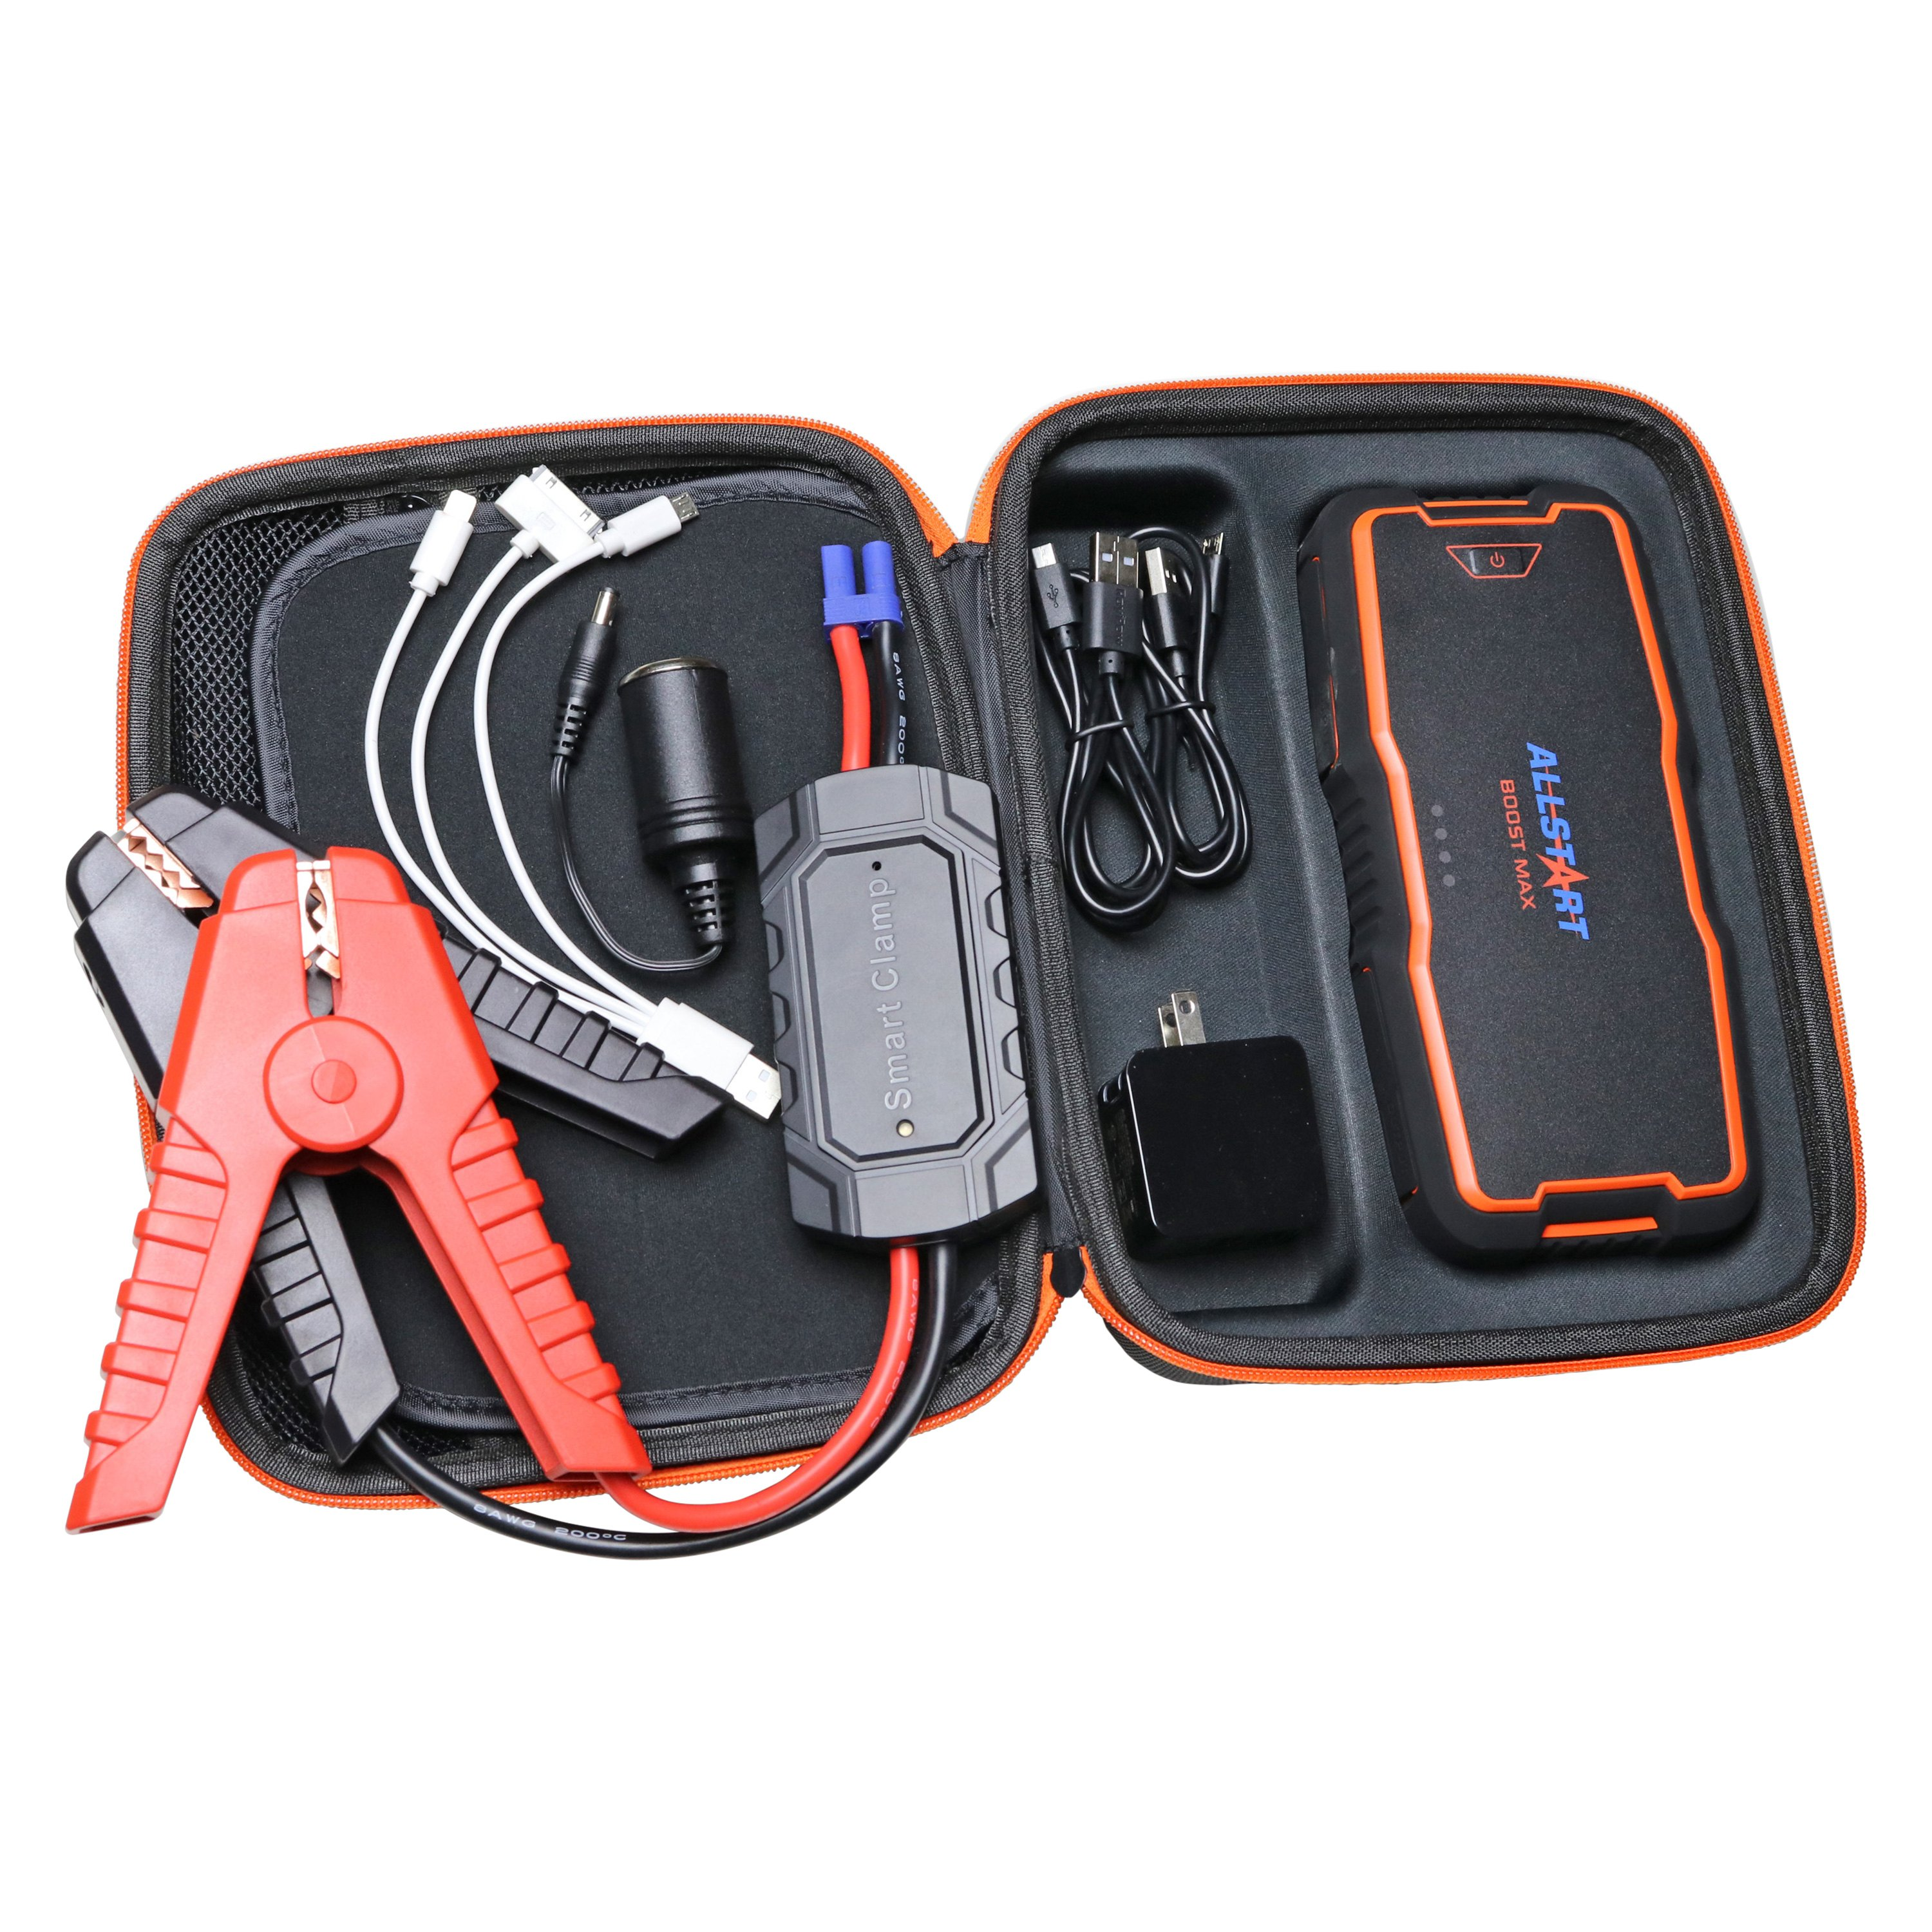 Allstart 550 Portable Power Source Jump Start with Intelli Clamps Boost Max 400A